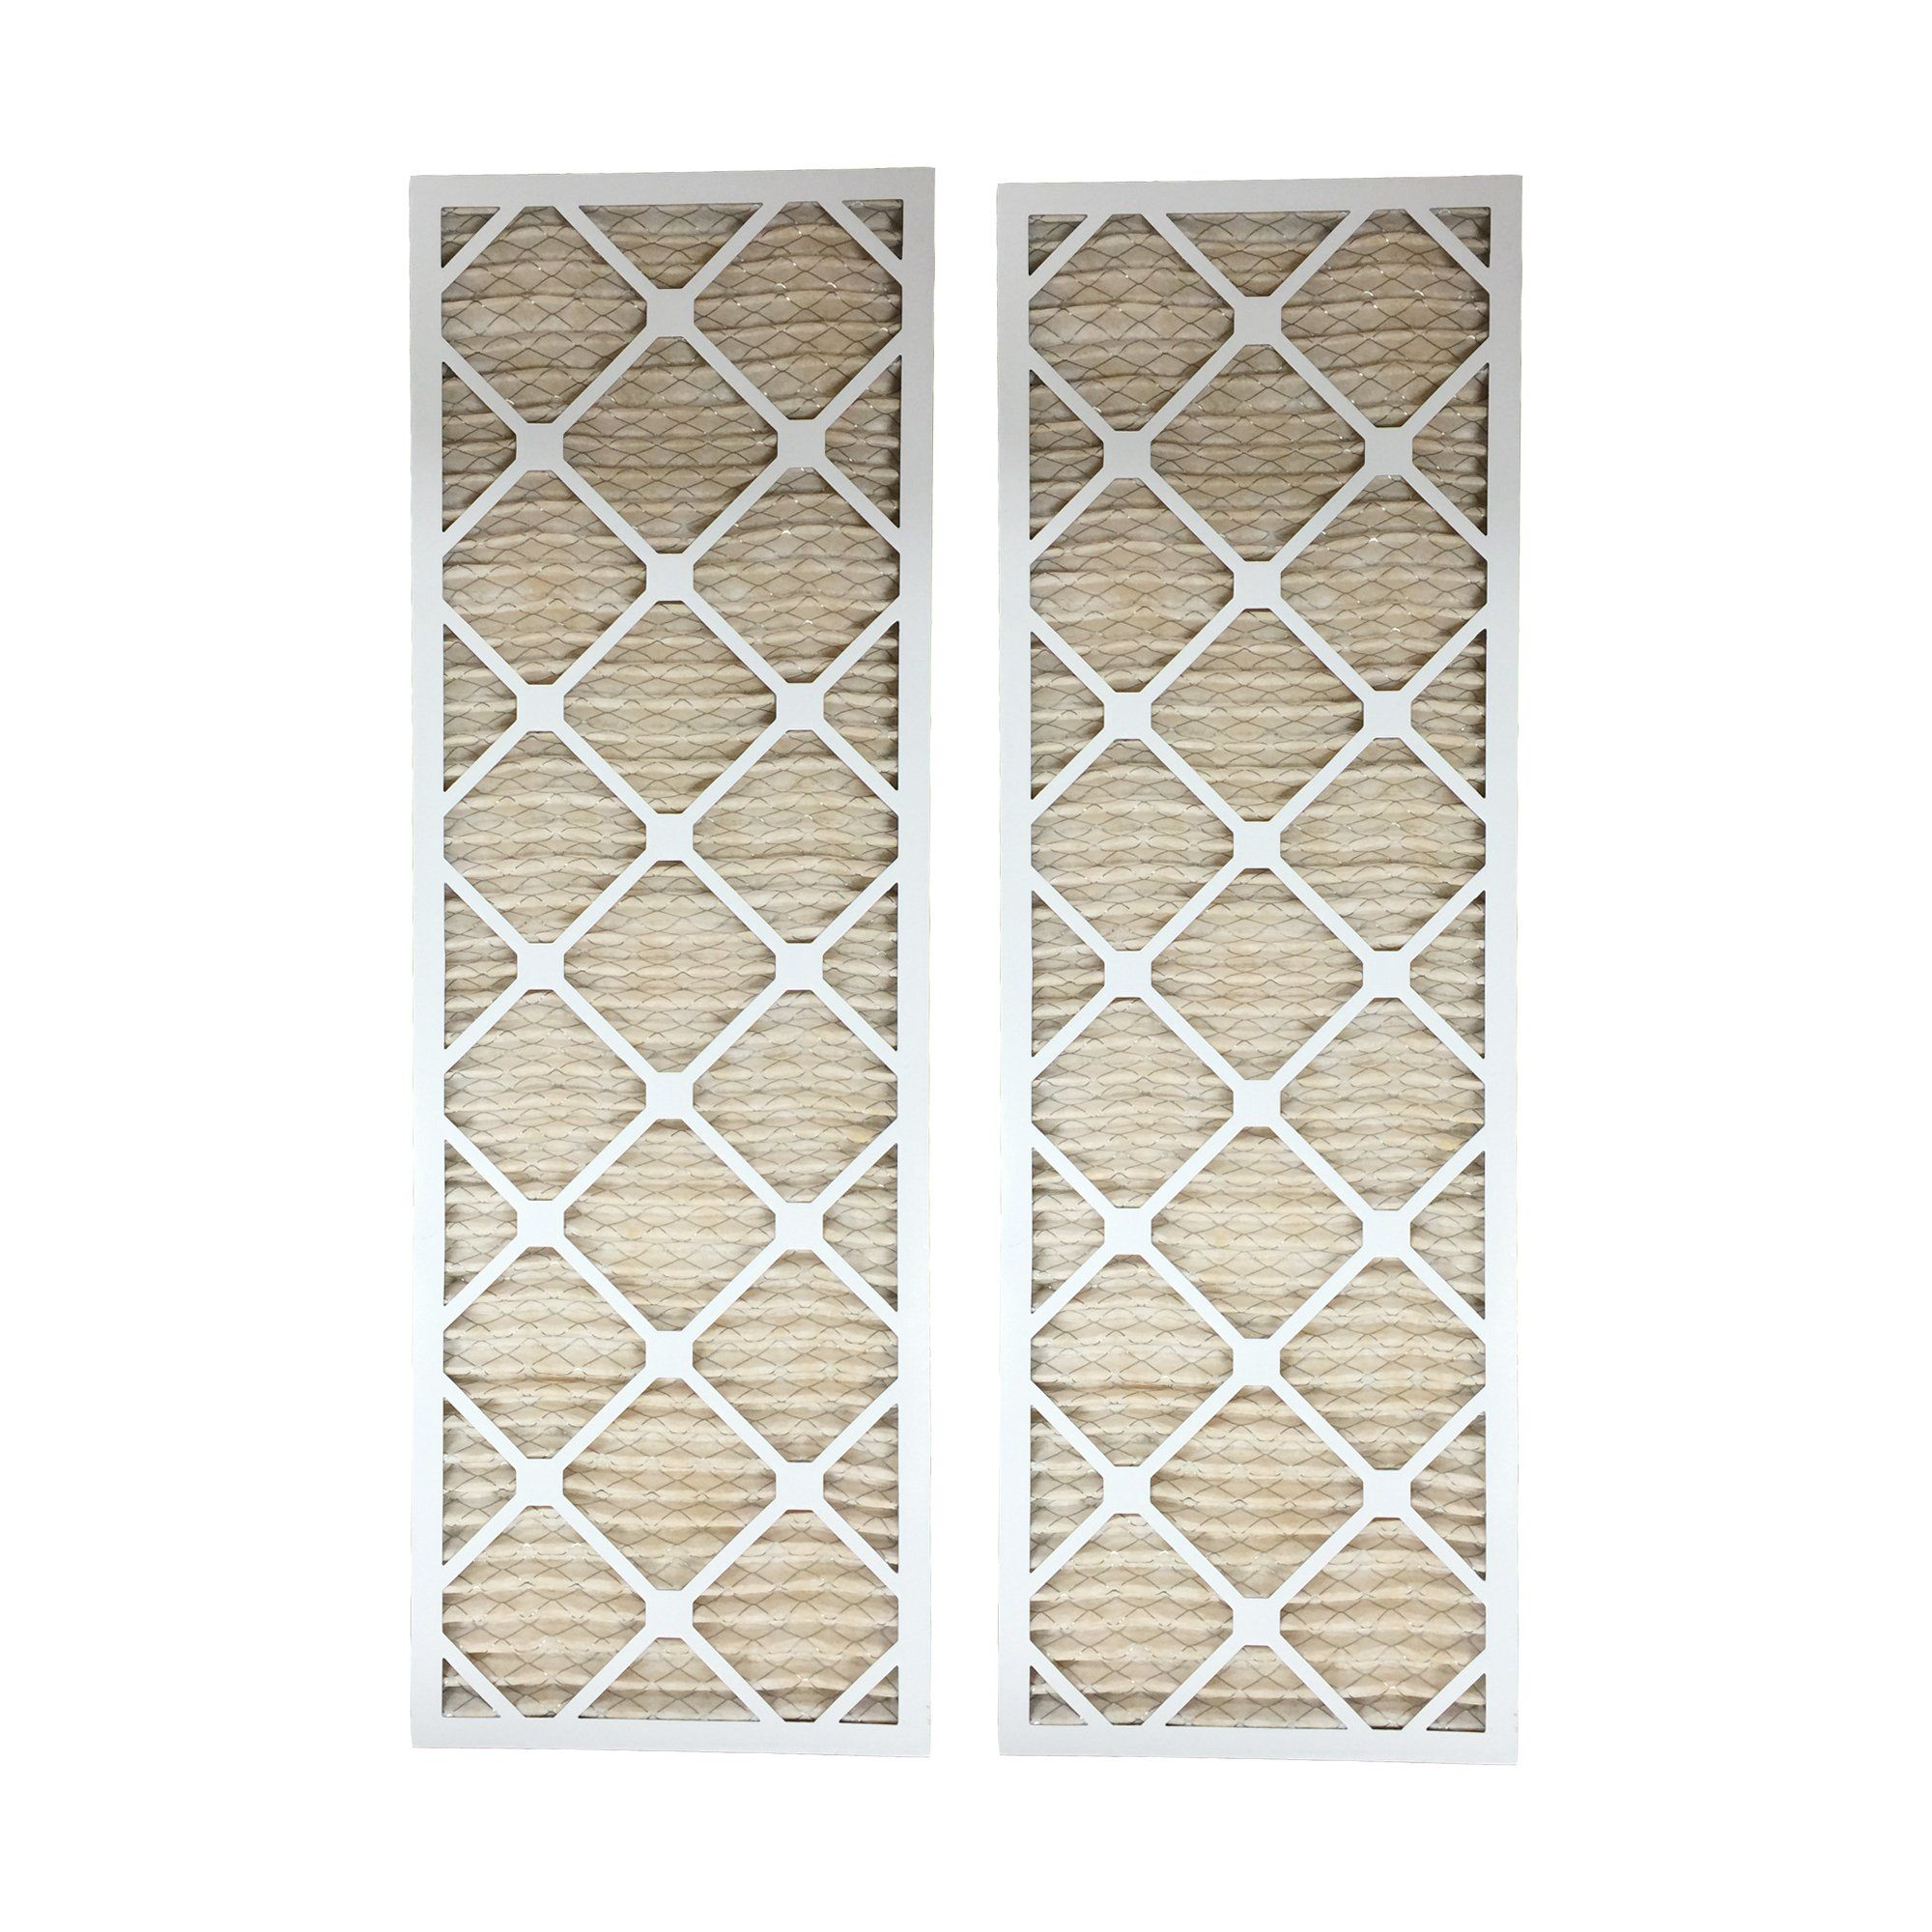 2pk 12x36x1 MERV11 Allergen Air Furnace Filters Furnace